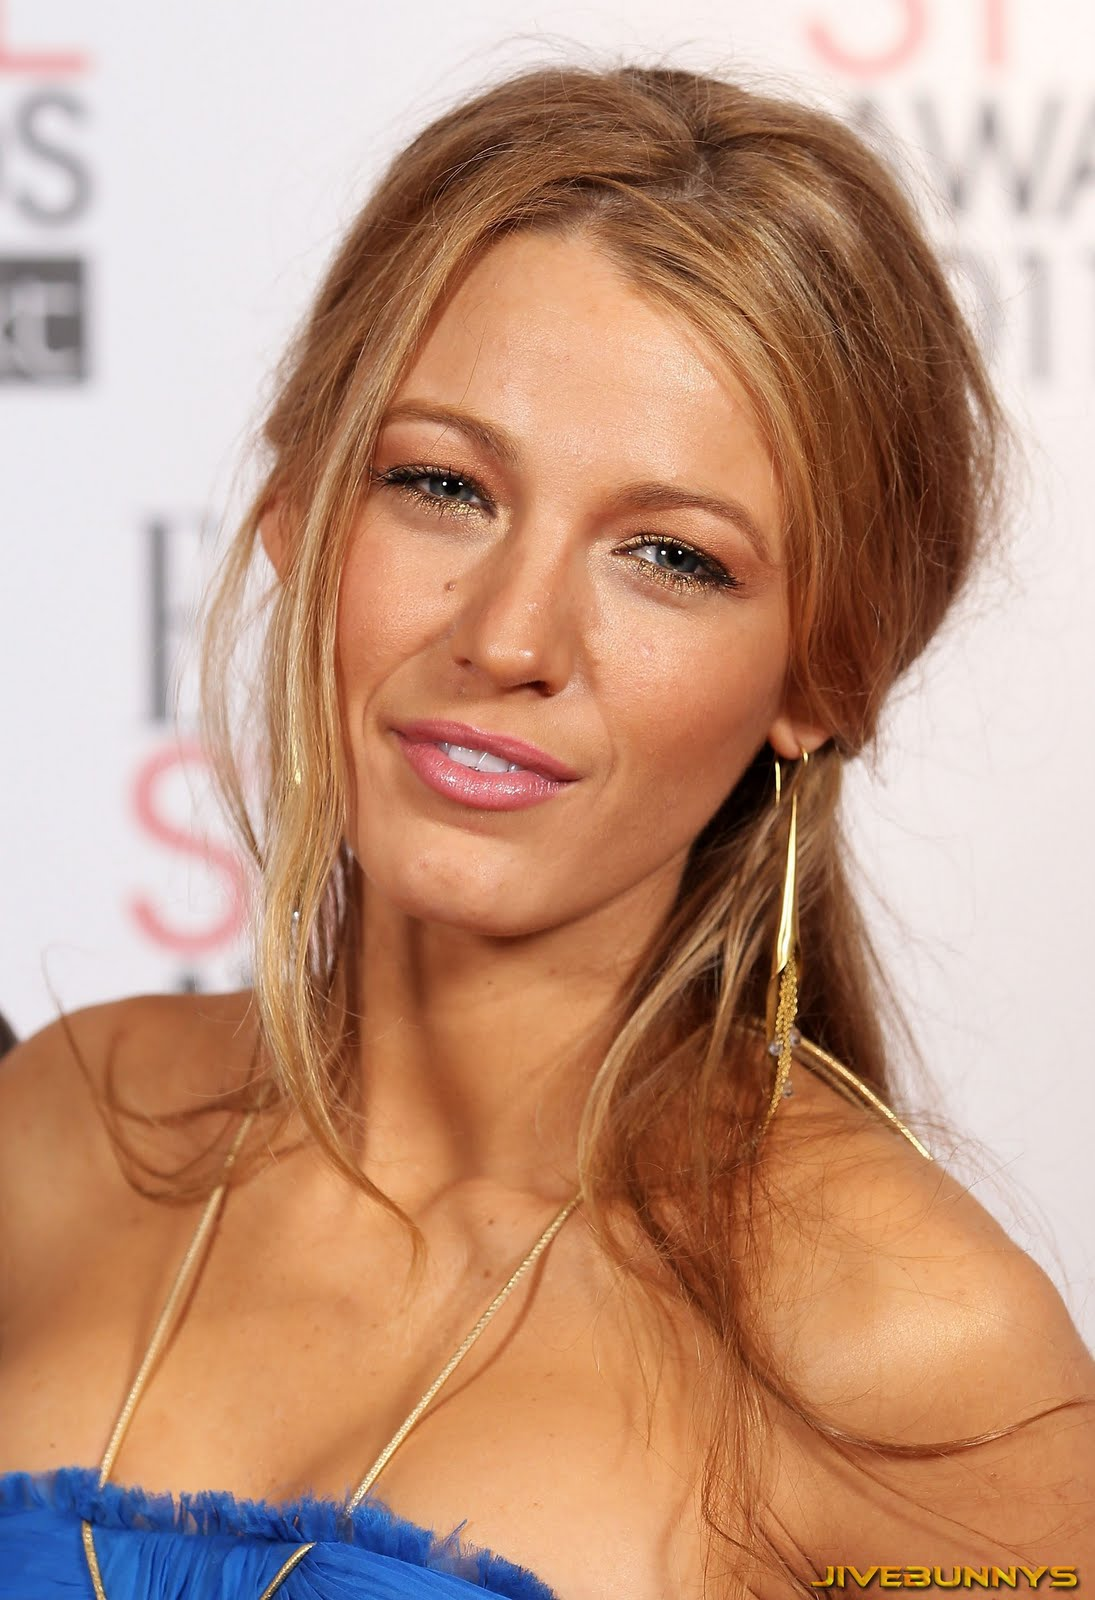 Blake Lively special pictures (4) | Film Actresses блейк лайвли